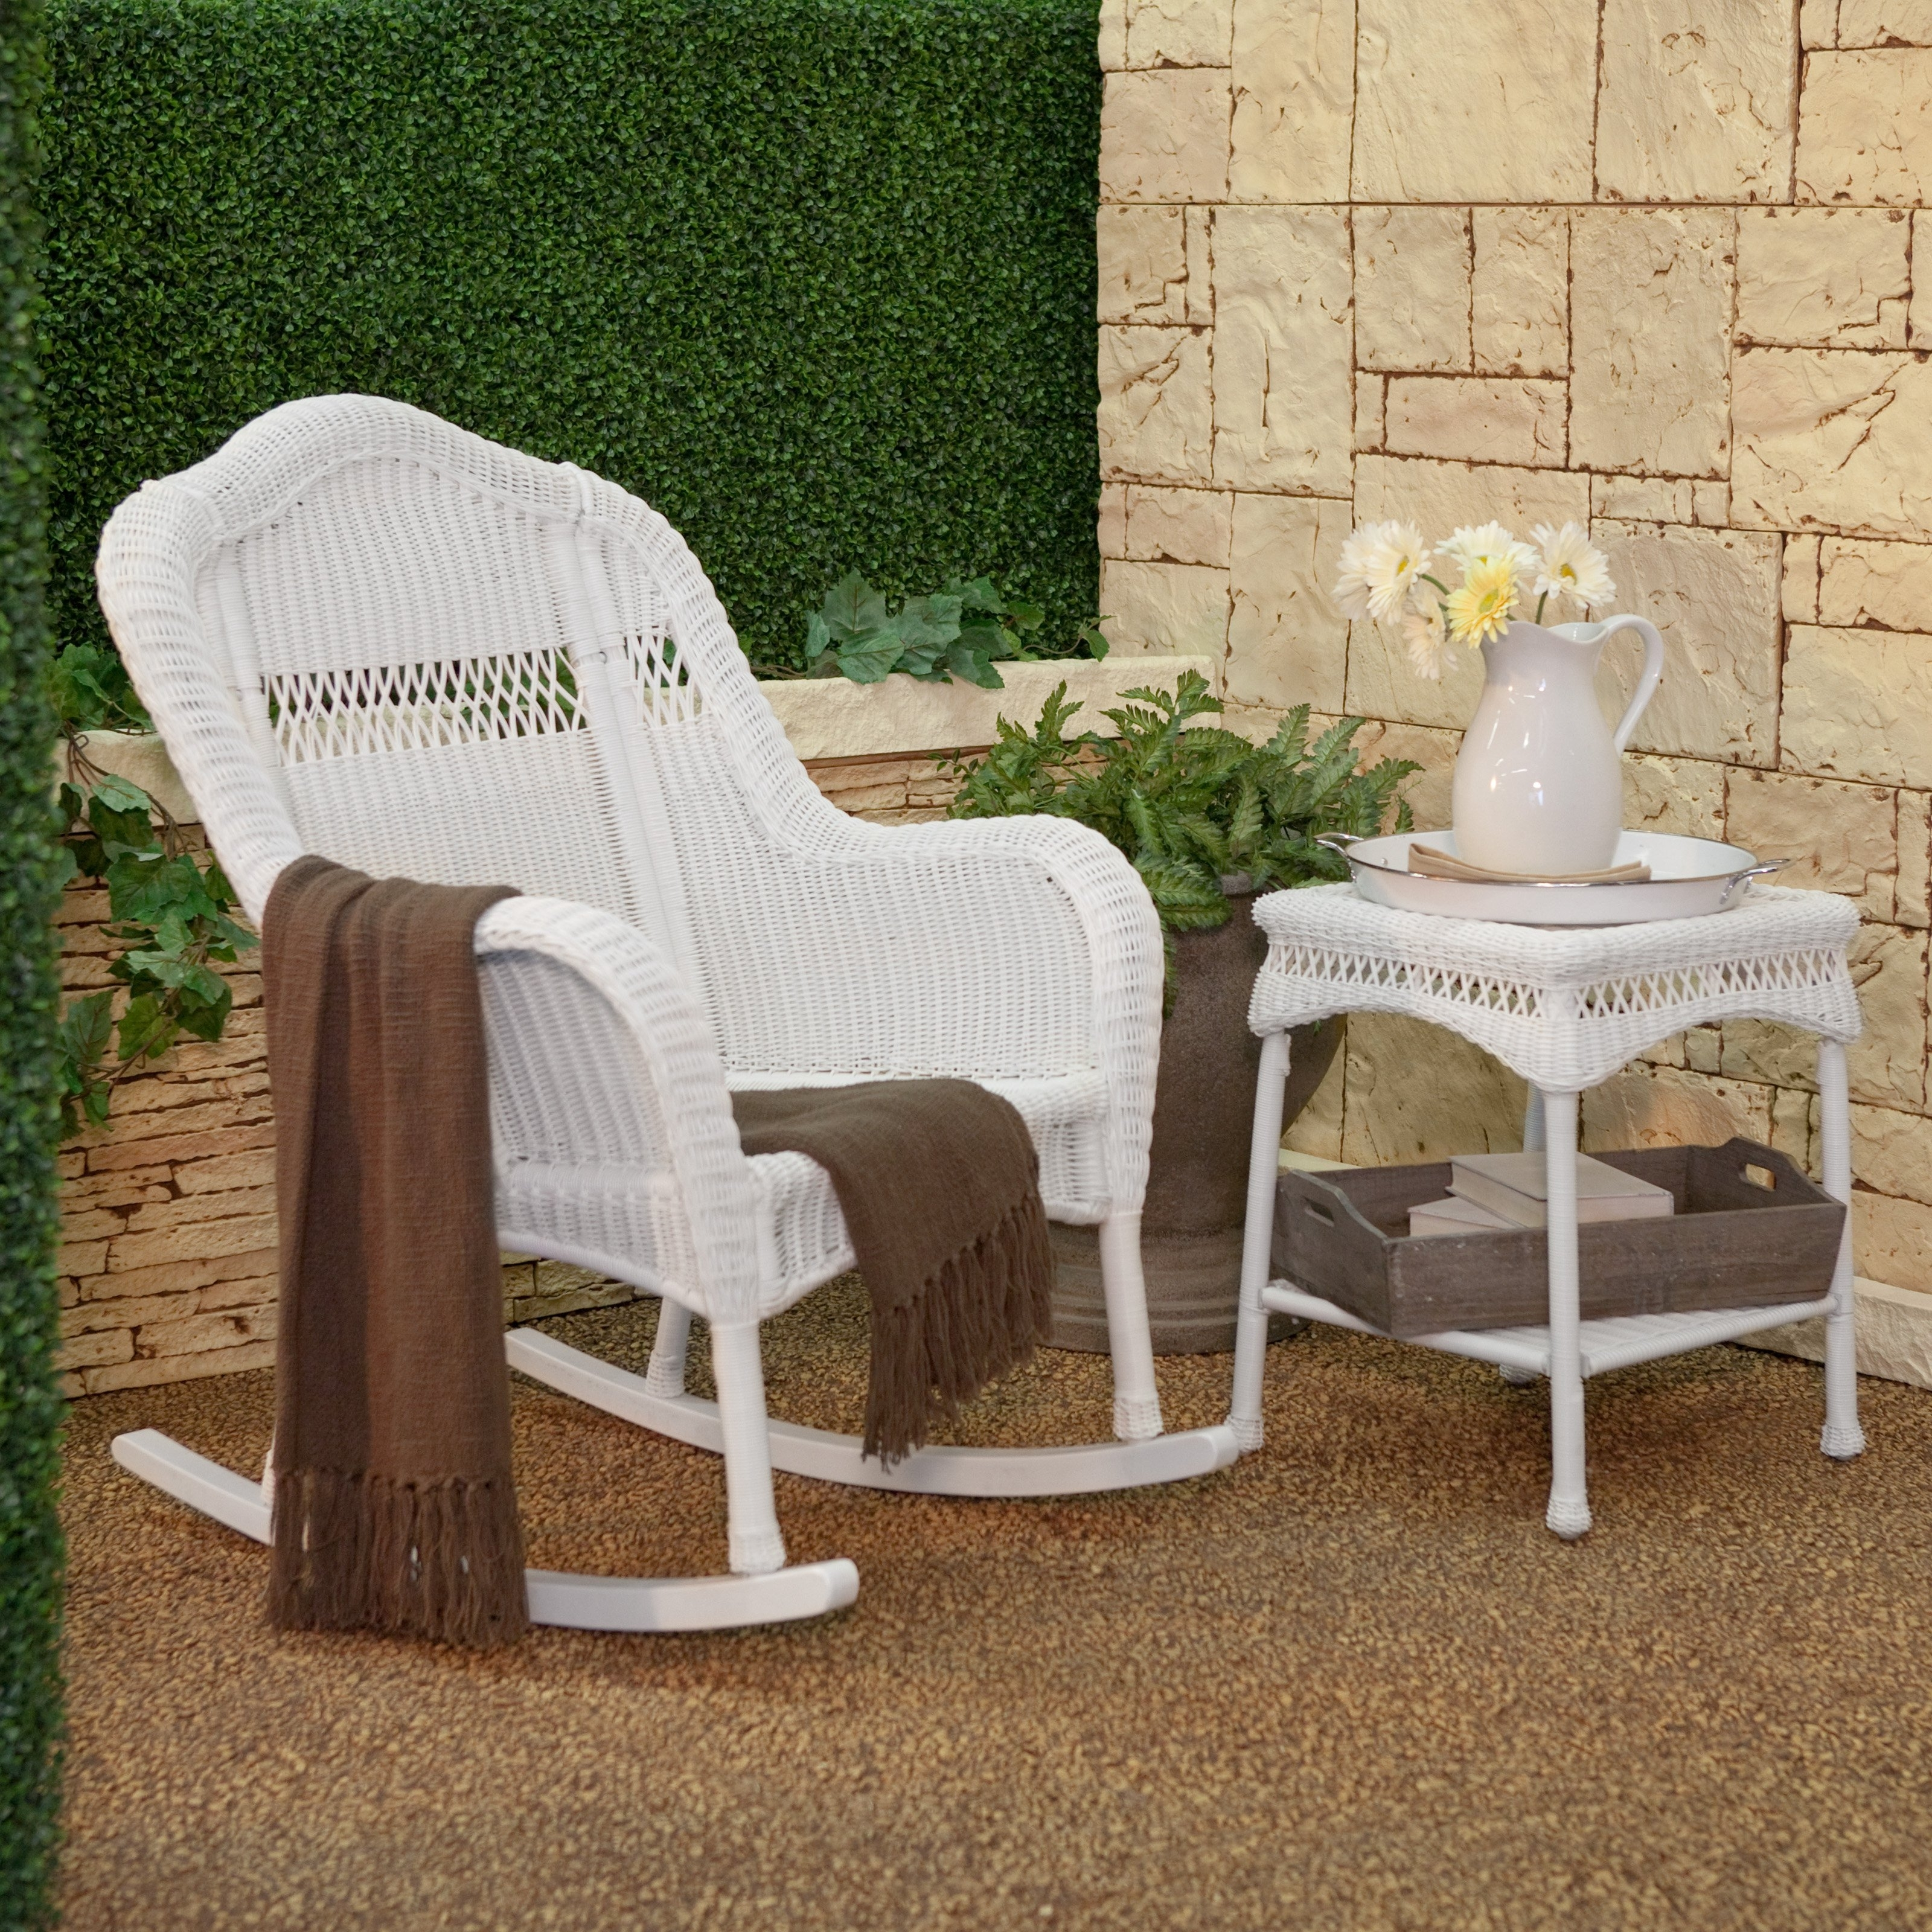 White Wicker Rocking Chairs Pertaining To Latest Coral Coast Casco Bay Resin Wicker Rocking Chair With Cushion Option (View 6 of 15)